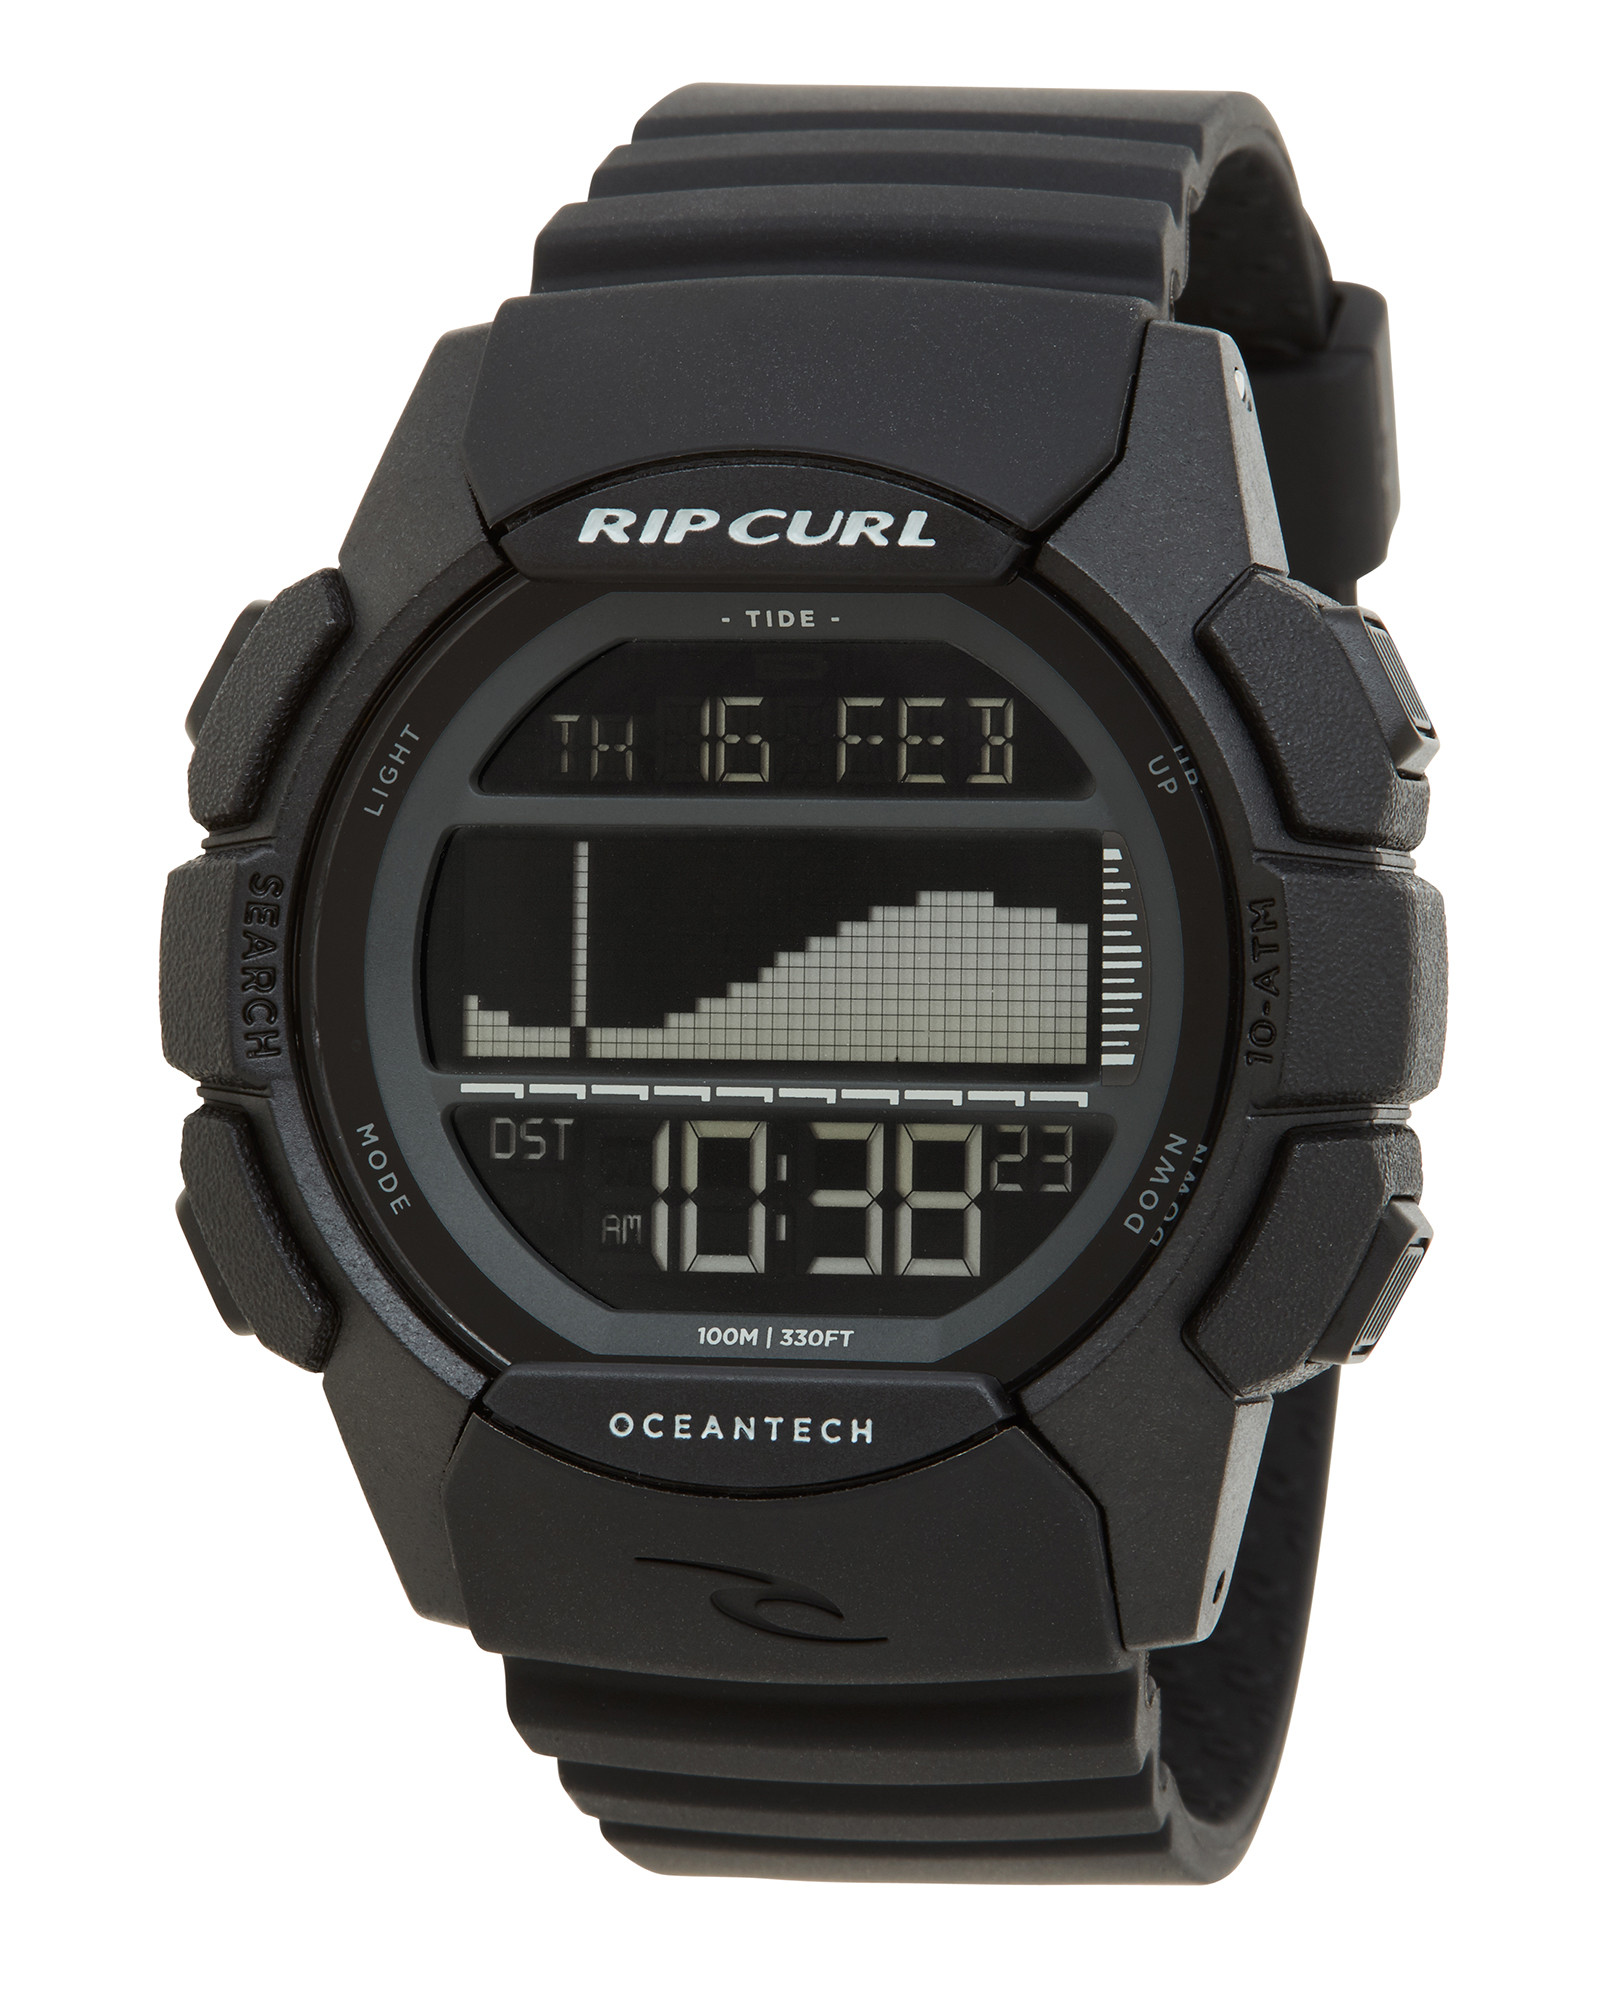 RELOJ RIP CURL DRIFTER TIDE - Tablas Surf Shop f905234f525